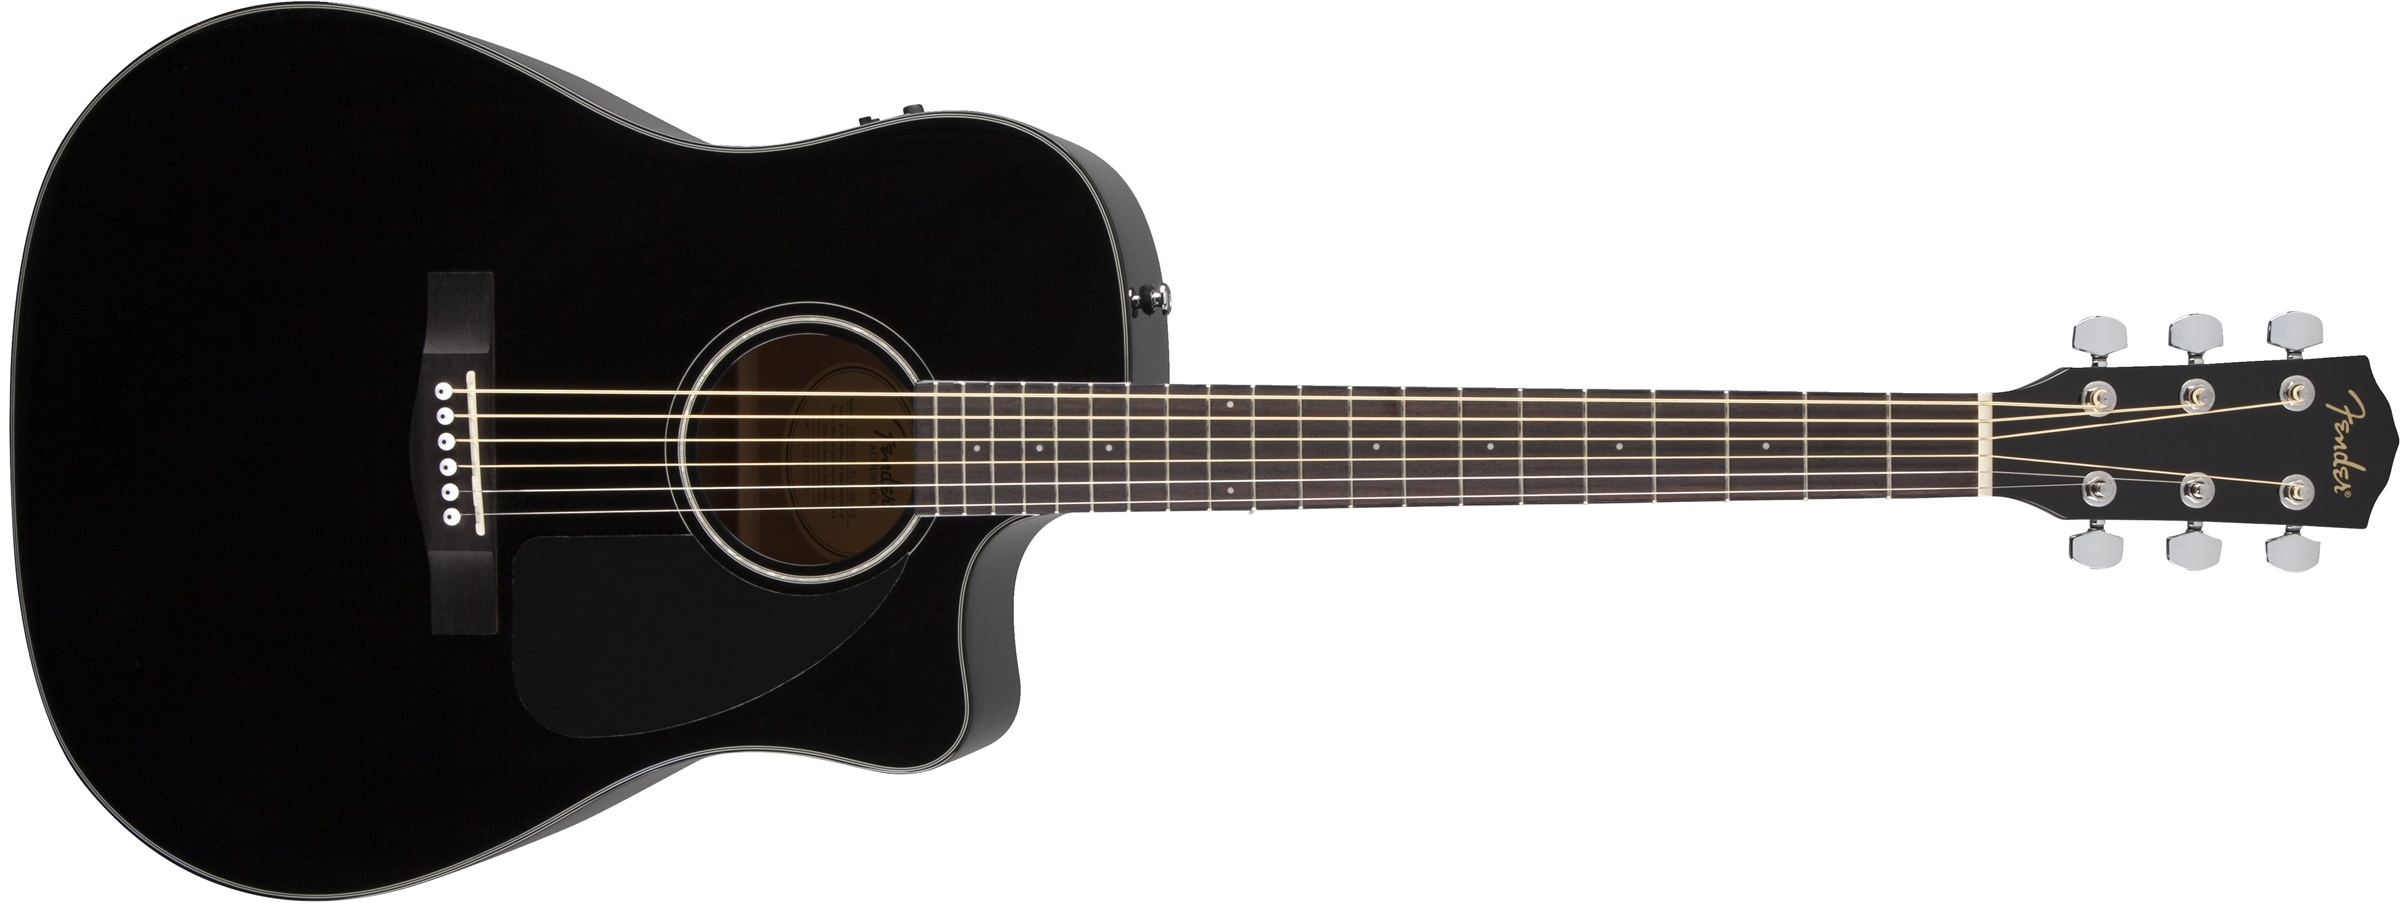 en US acoustic guitars dreadnought cd ce with case product